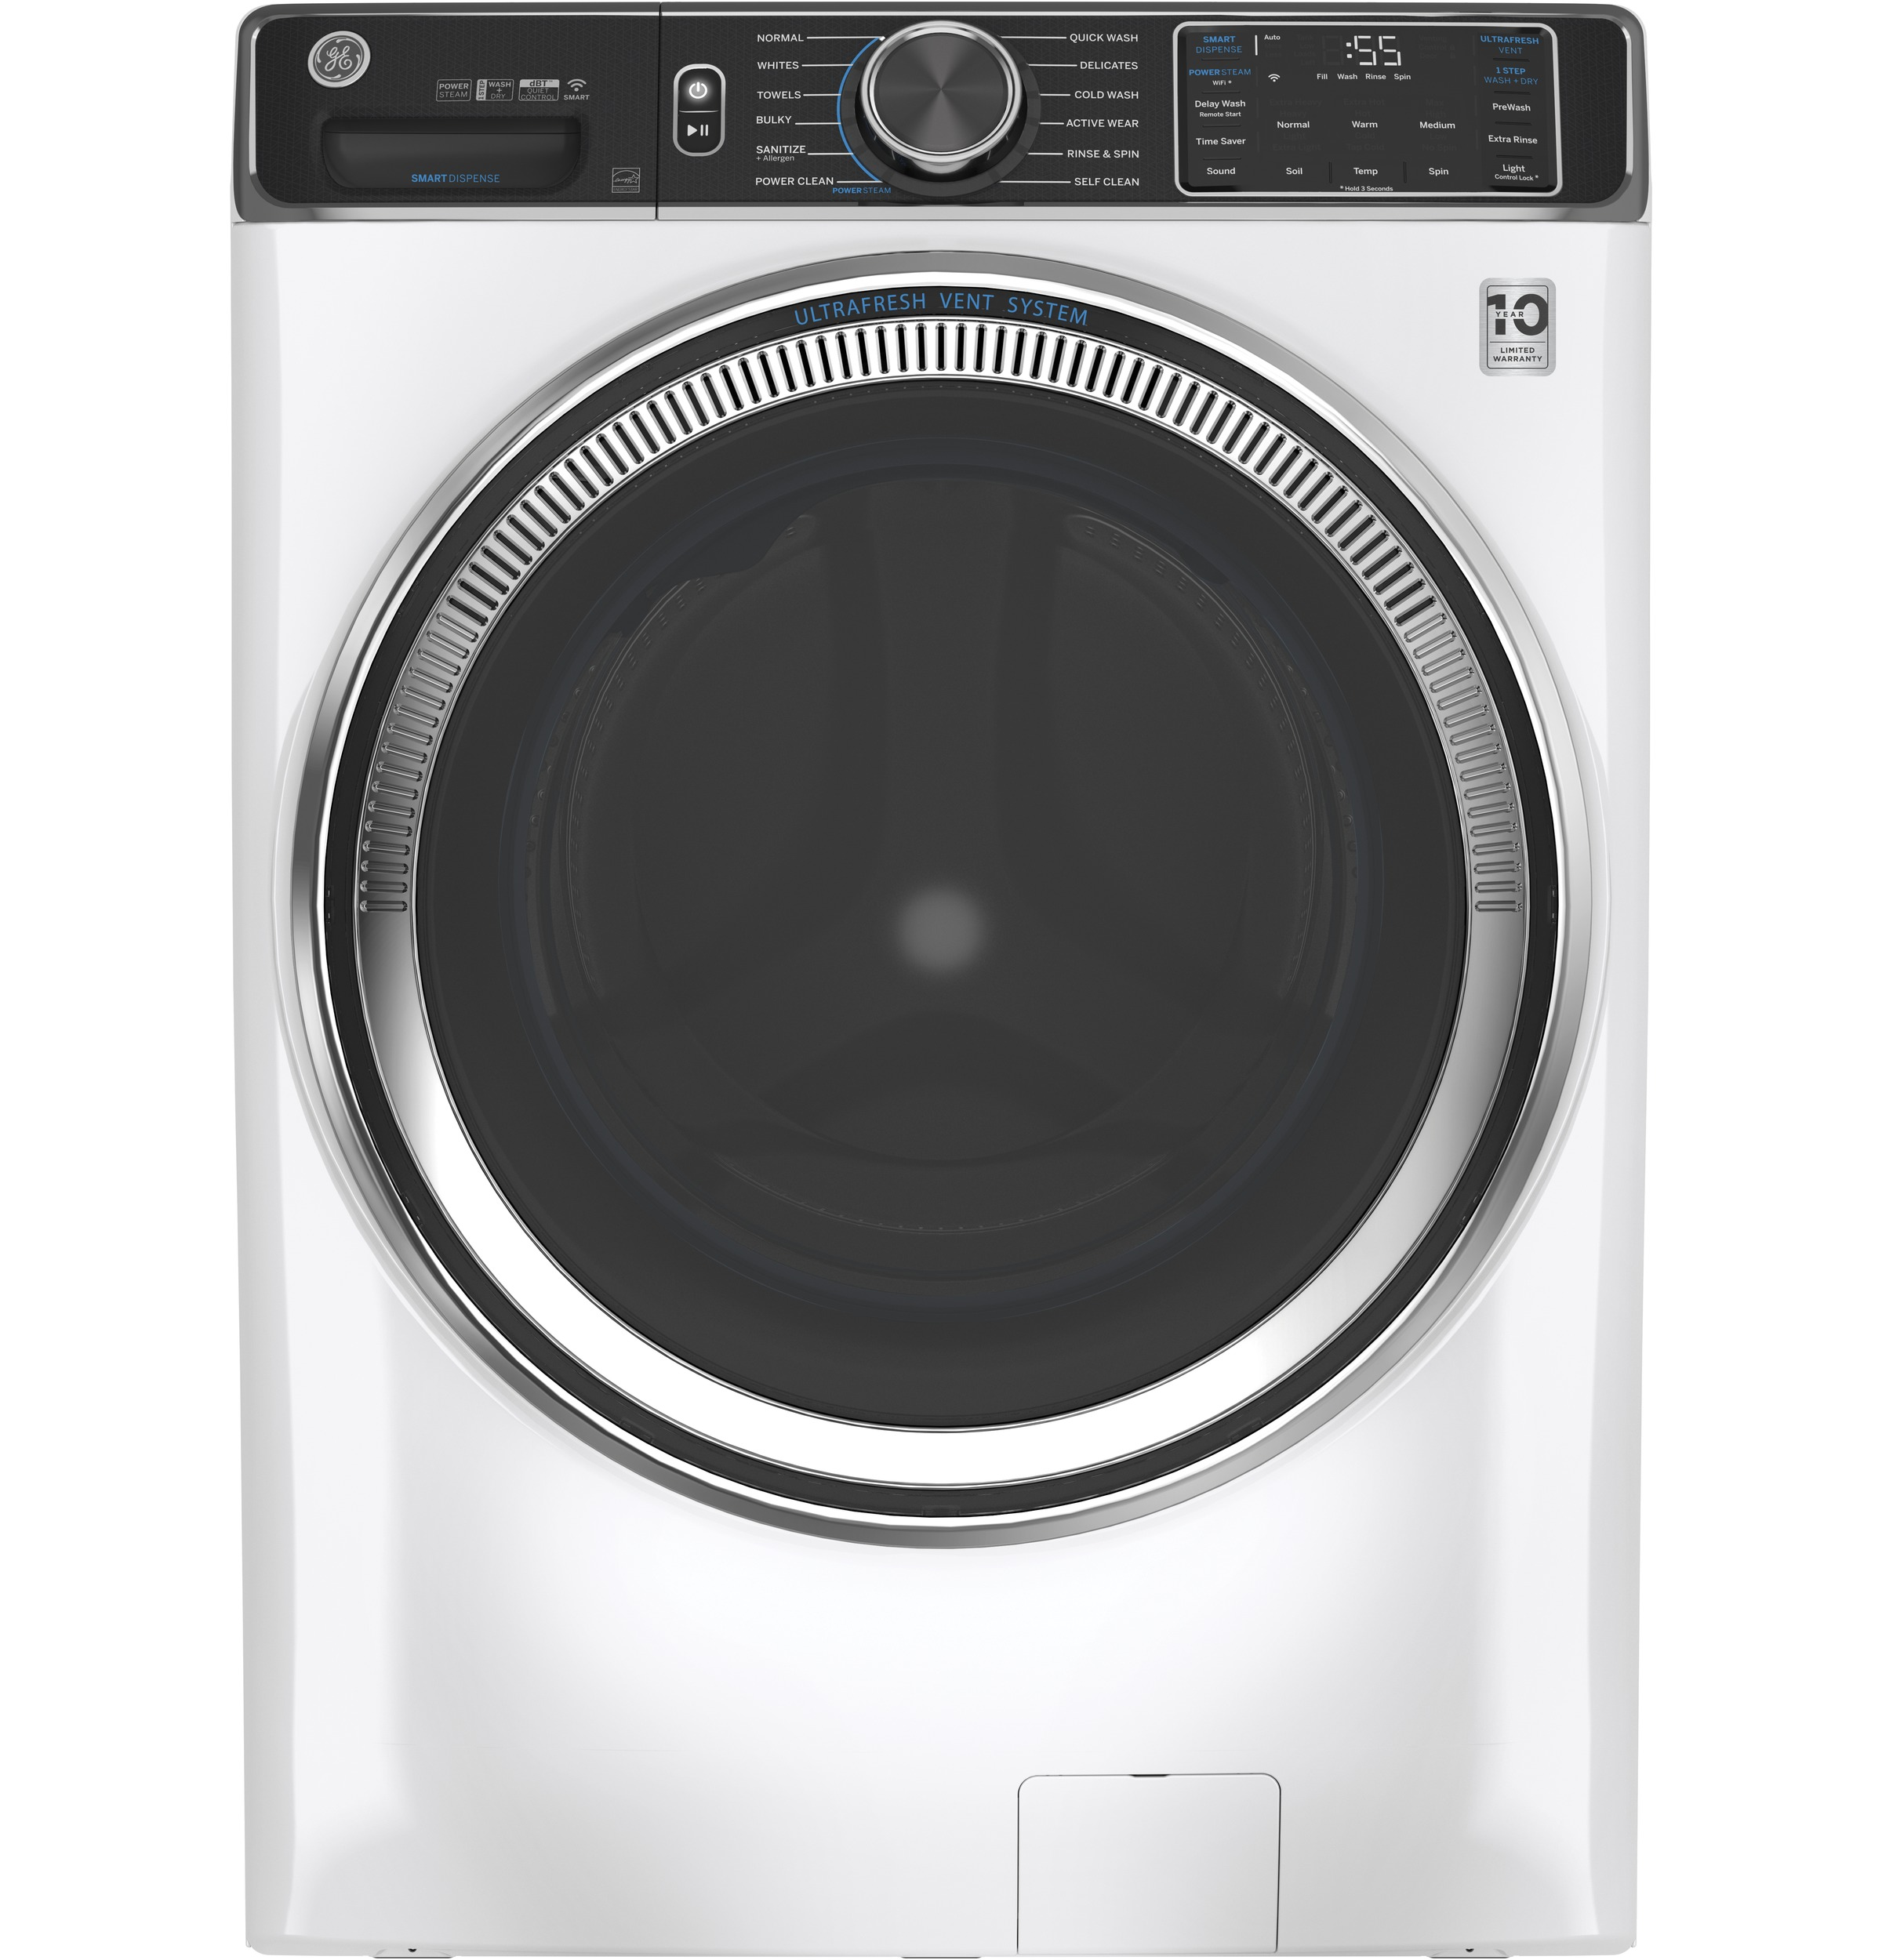 Model: GFW850SSNWW | GE GE® 5.0 cu. ft. Capacity Smart Front Load ENERGY STAR® Steam Washer with SmartDispense™ UltraFresh Vent System with OdorBlock™ and Sanitize + Allergen